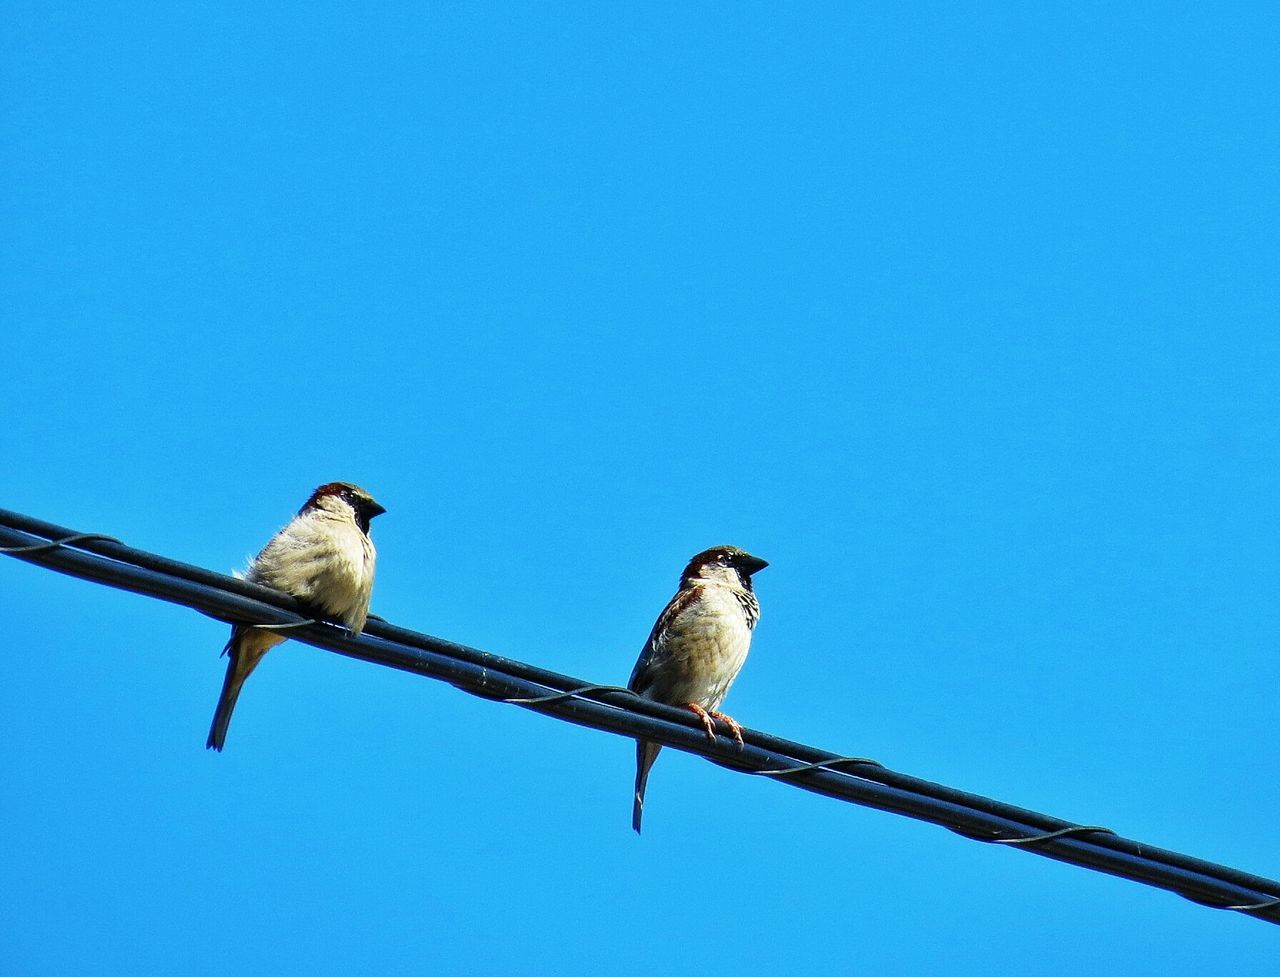 Low angle view of birds perched on railing against blue sky